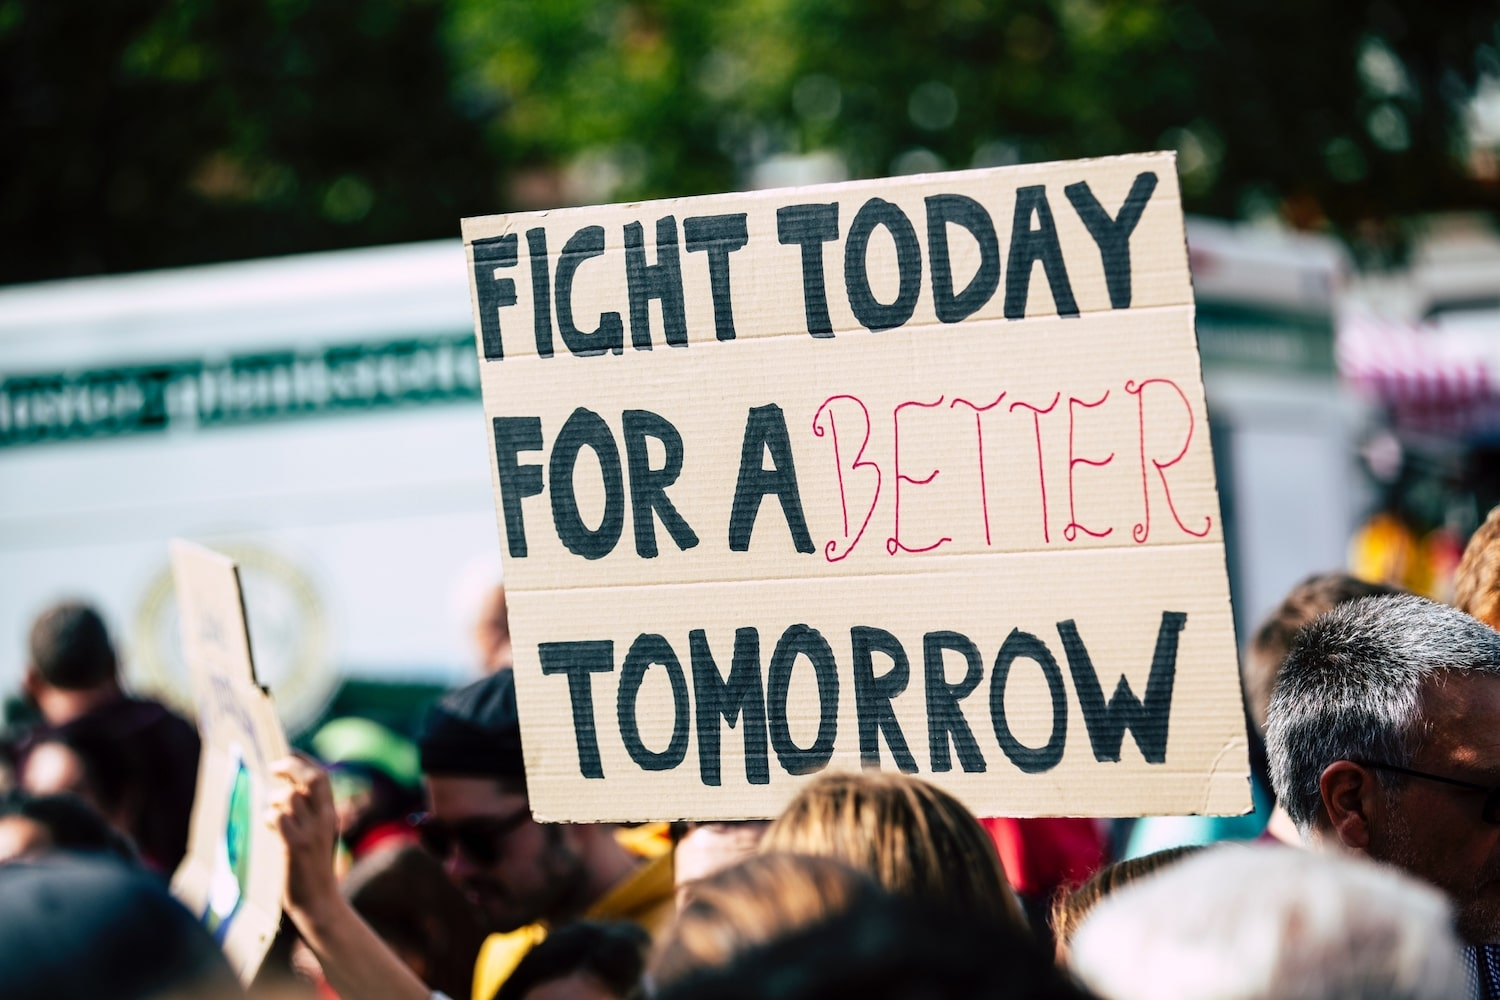 Miller Foundation Fight Today for a Better Tomorrow